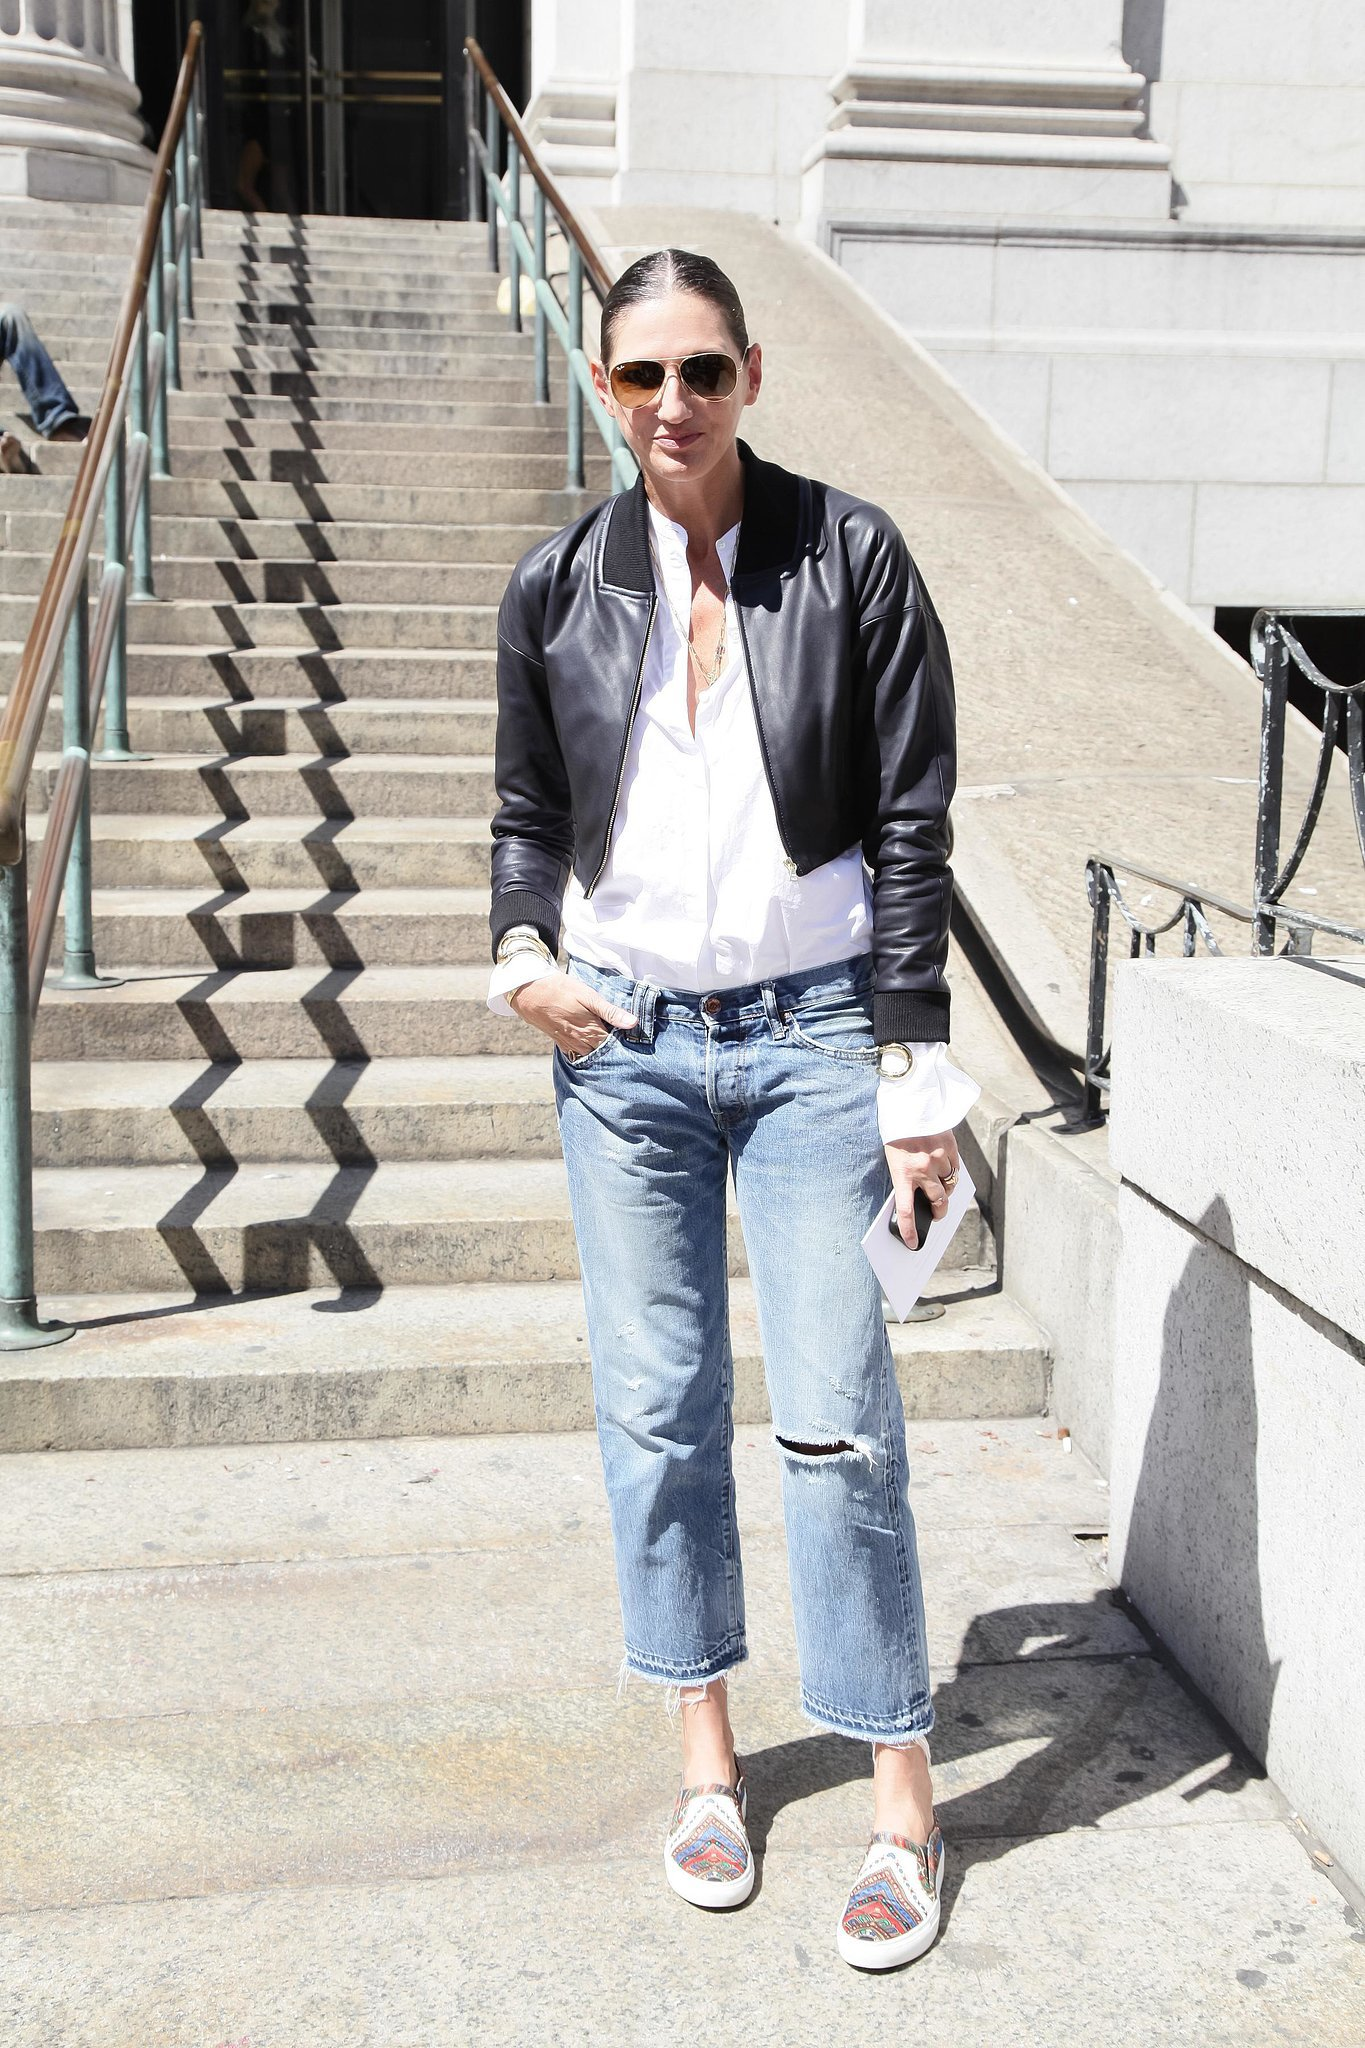 Casual Jenna mixed basics you likely have at home — relaxed boyfriend jeans, a leather jacket, and comfy kicks.